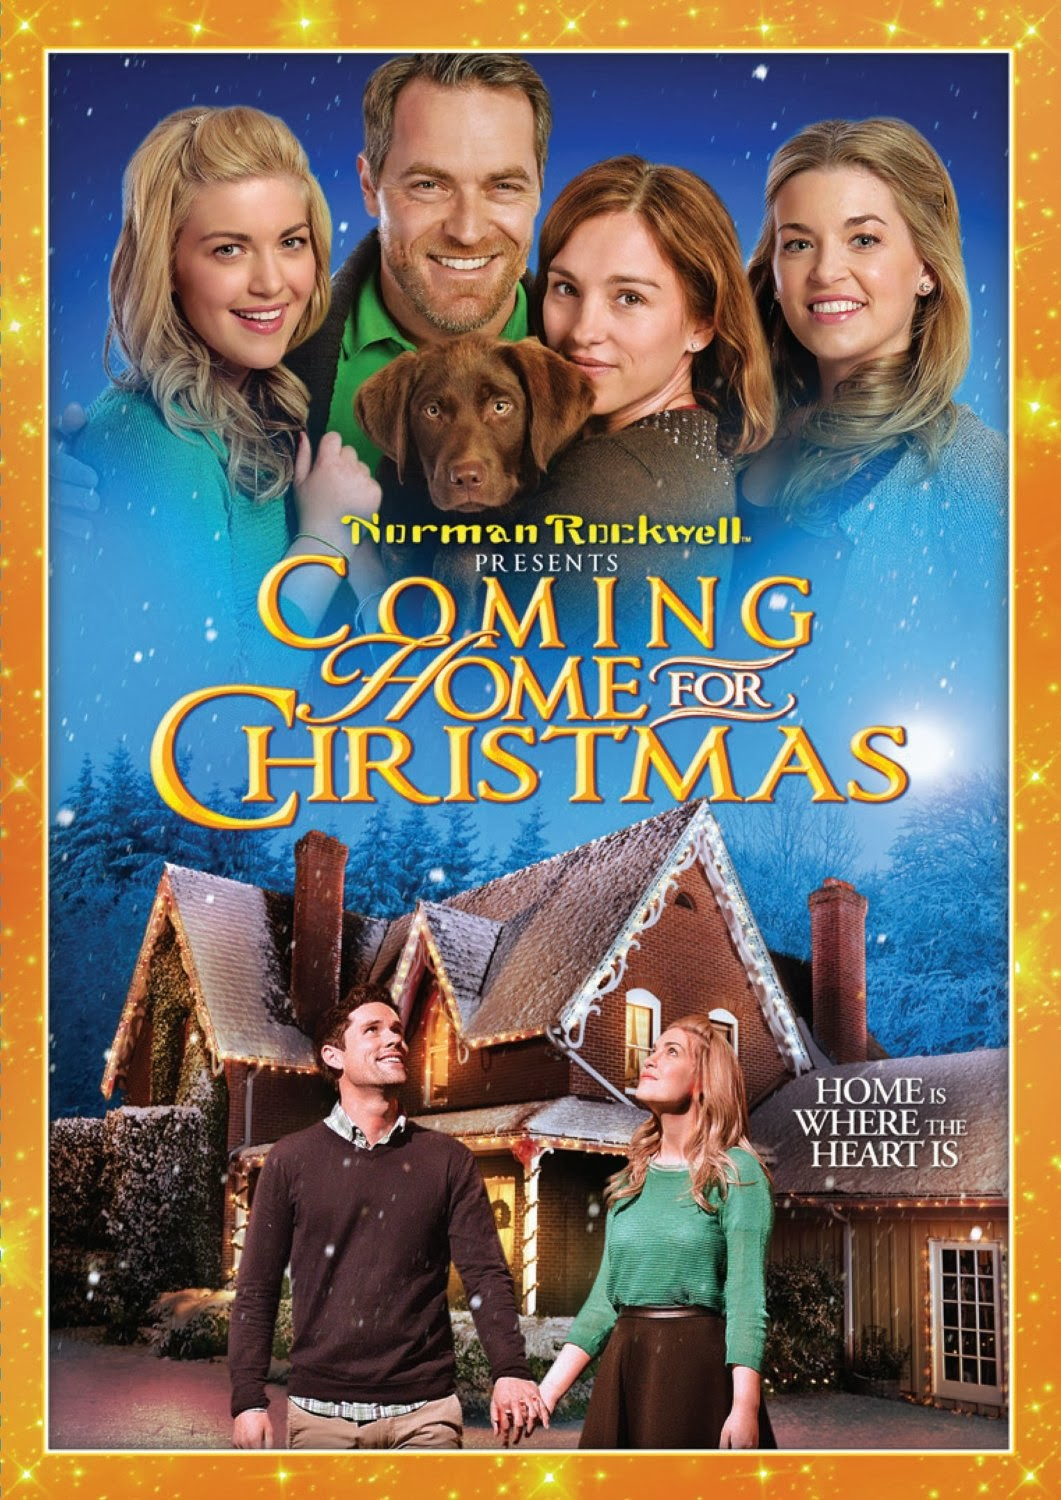 Trinity Rose\'s Garden: Coming Home for Christmas DVD REVIEW AND GIVEAWAY